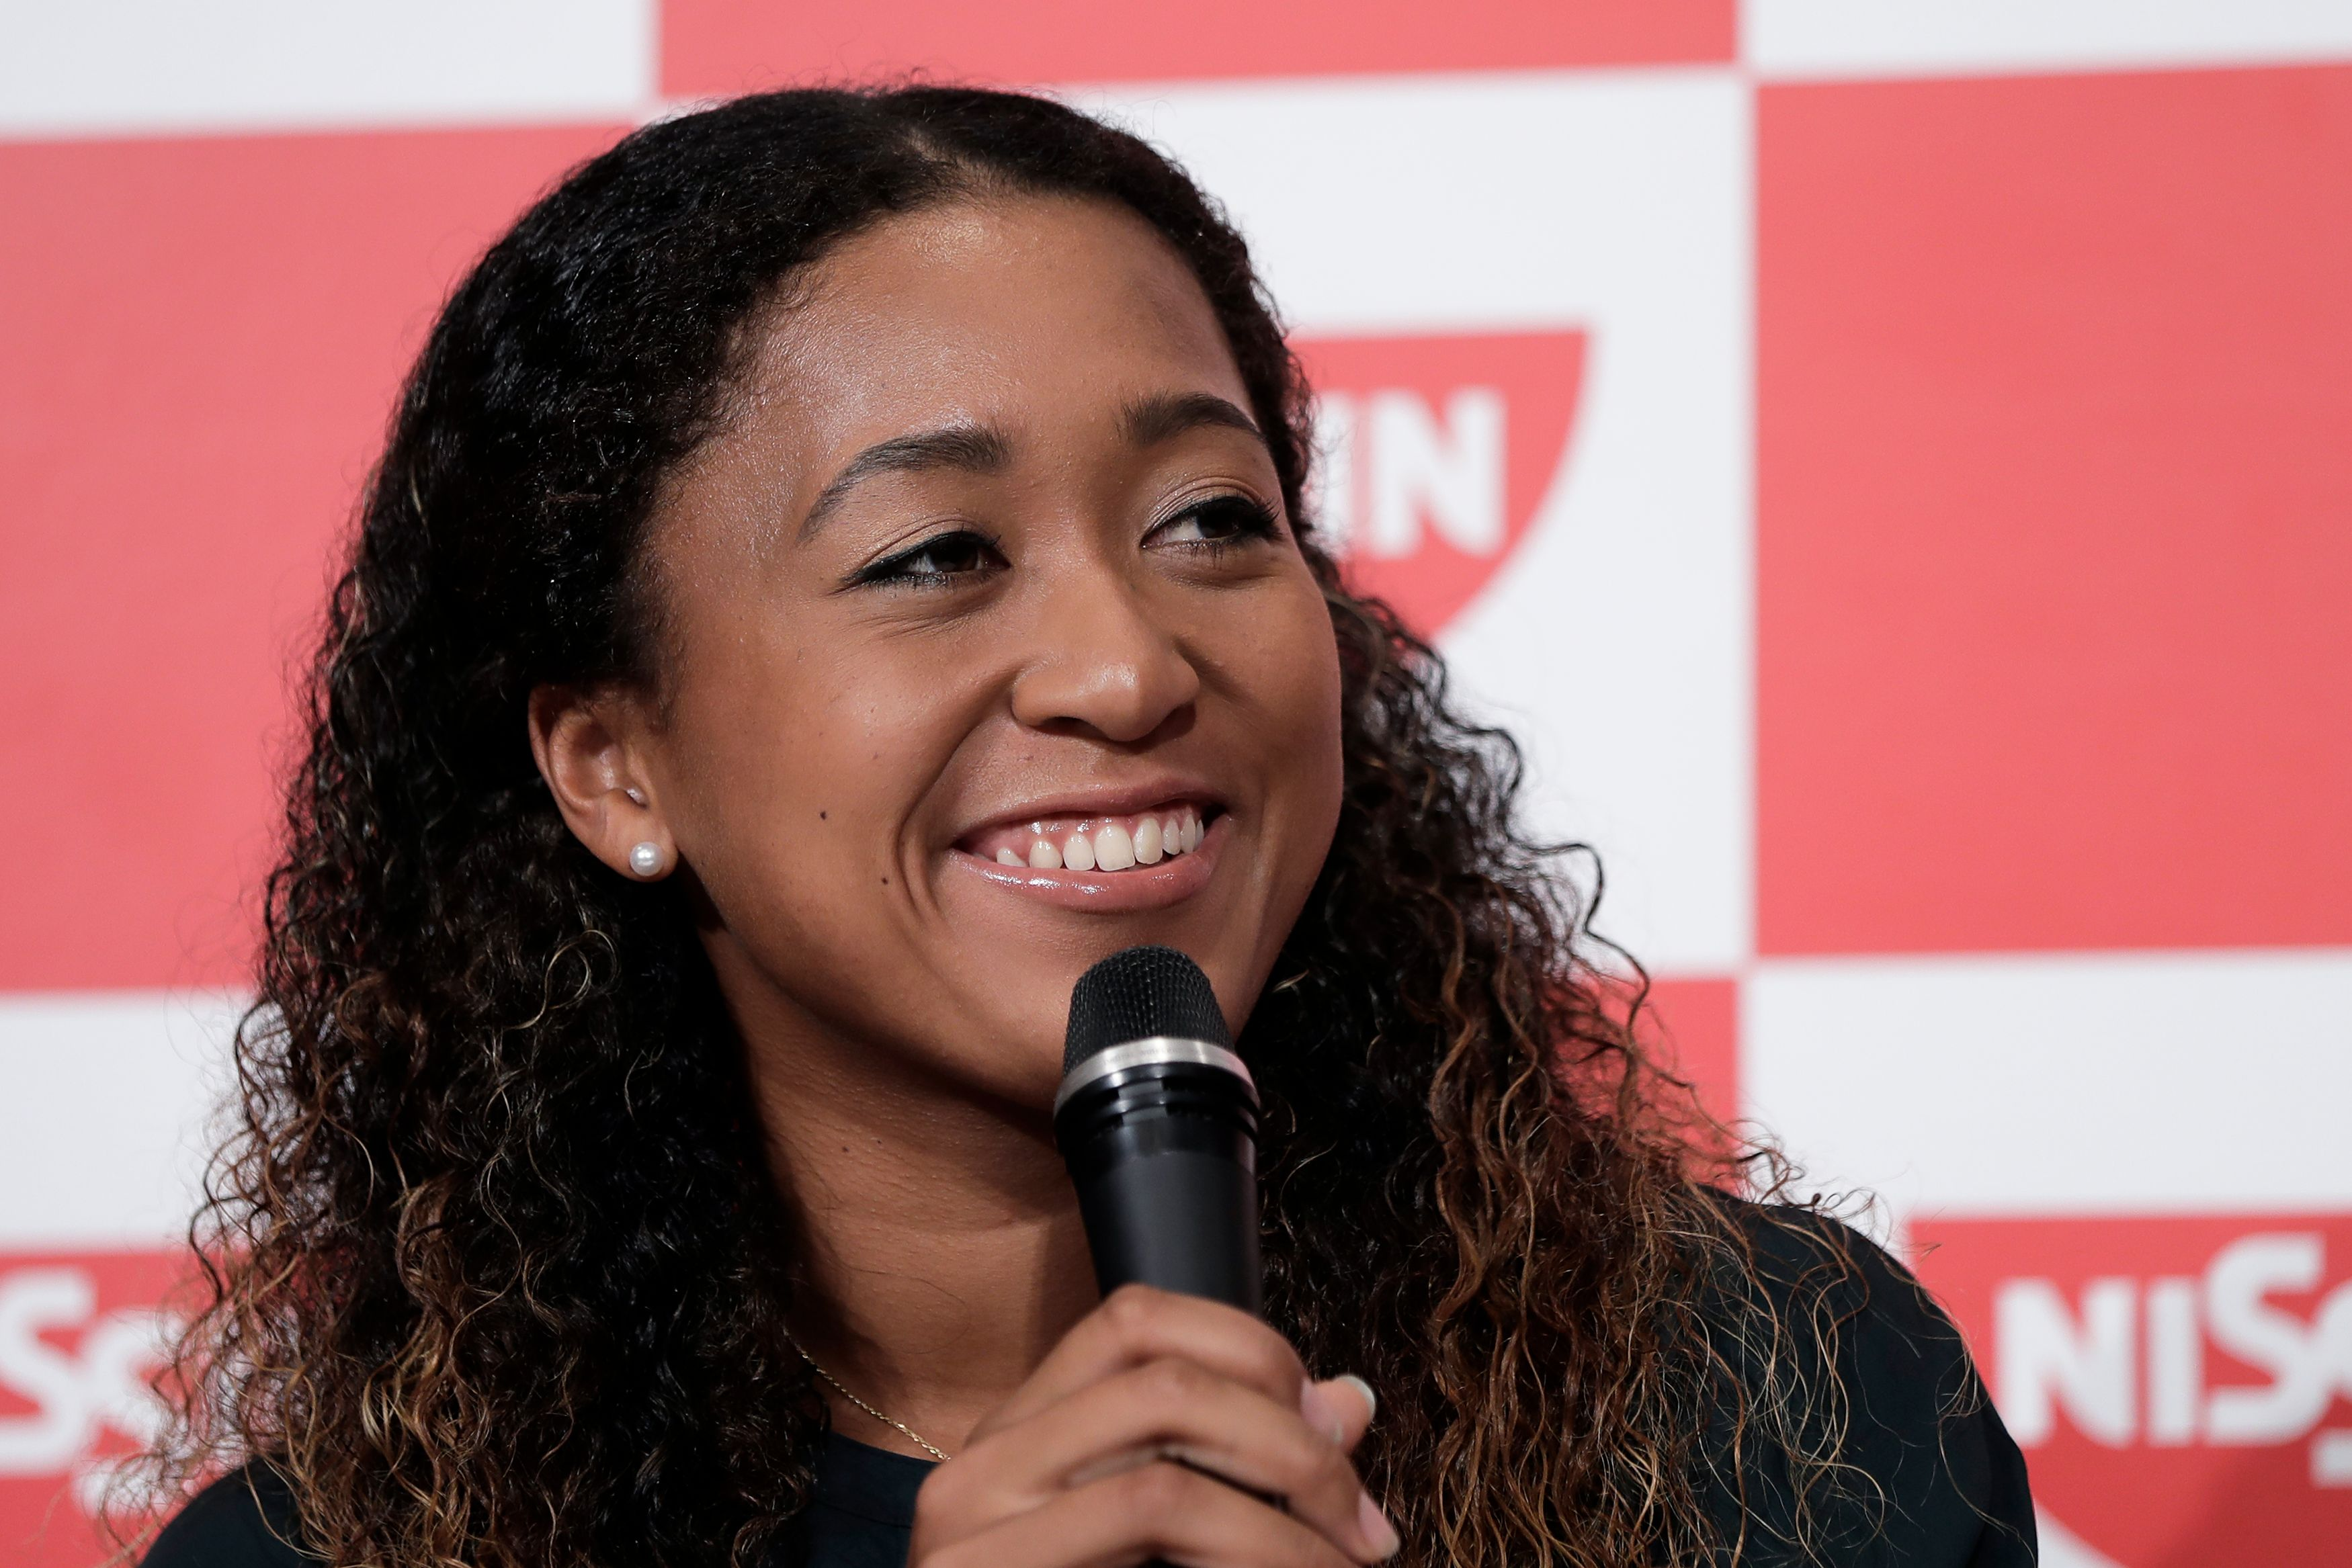 Naomi Osaka during a press conference on September 13, 2018 in Yokohama, Kanagawa, Japan. | Source: Getty Images